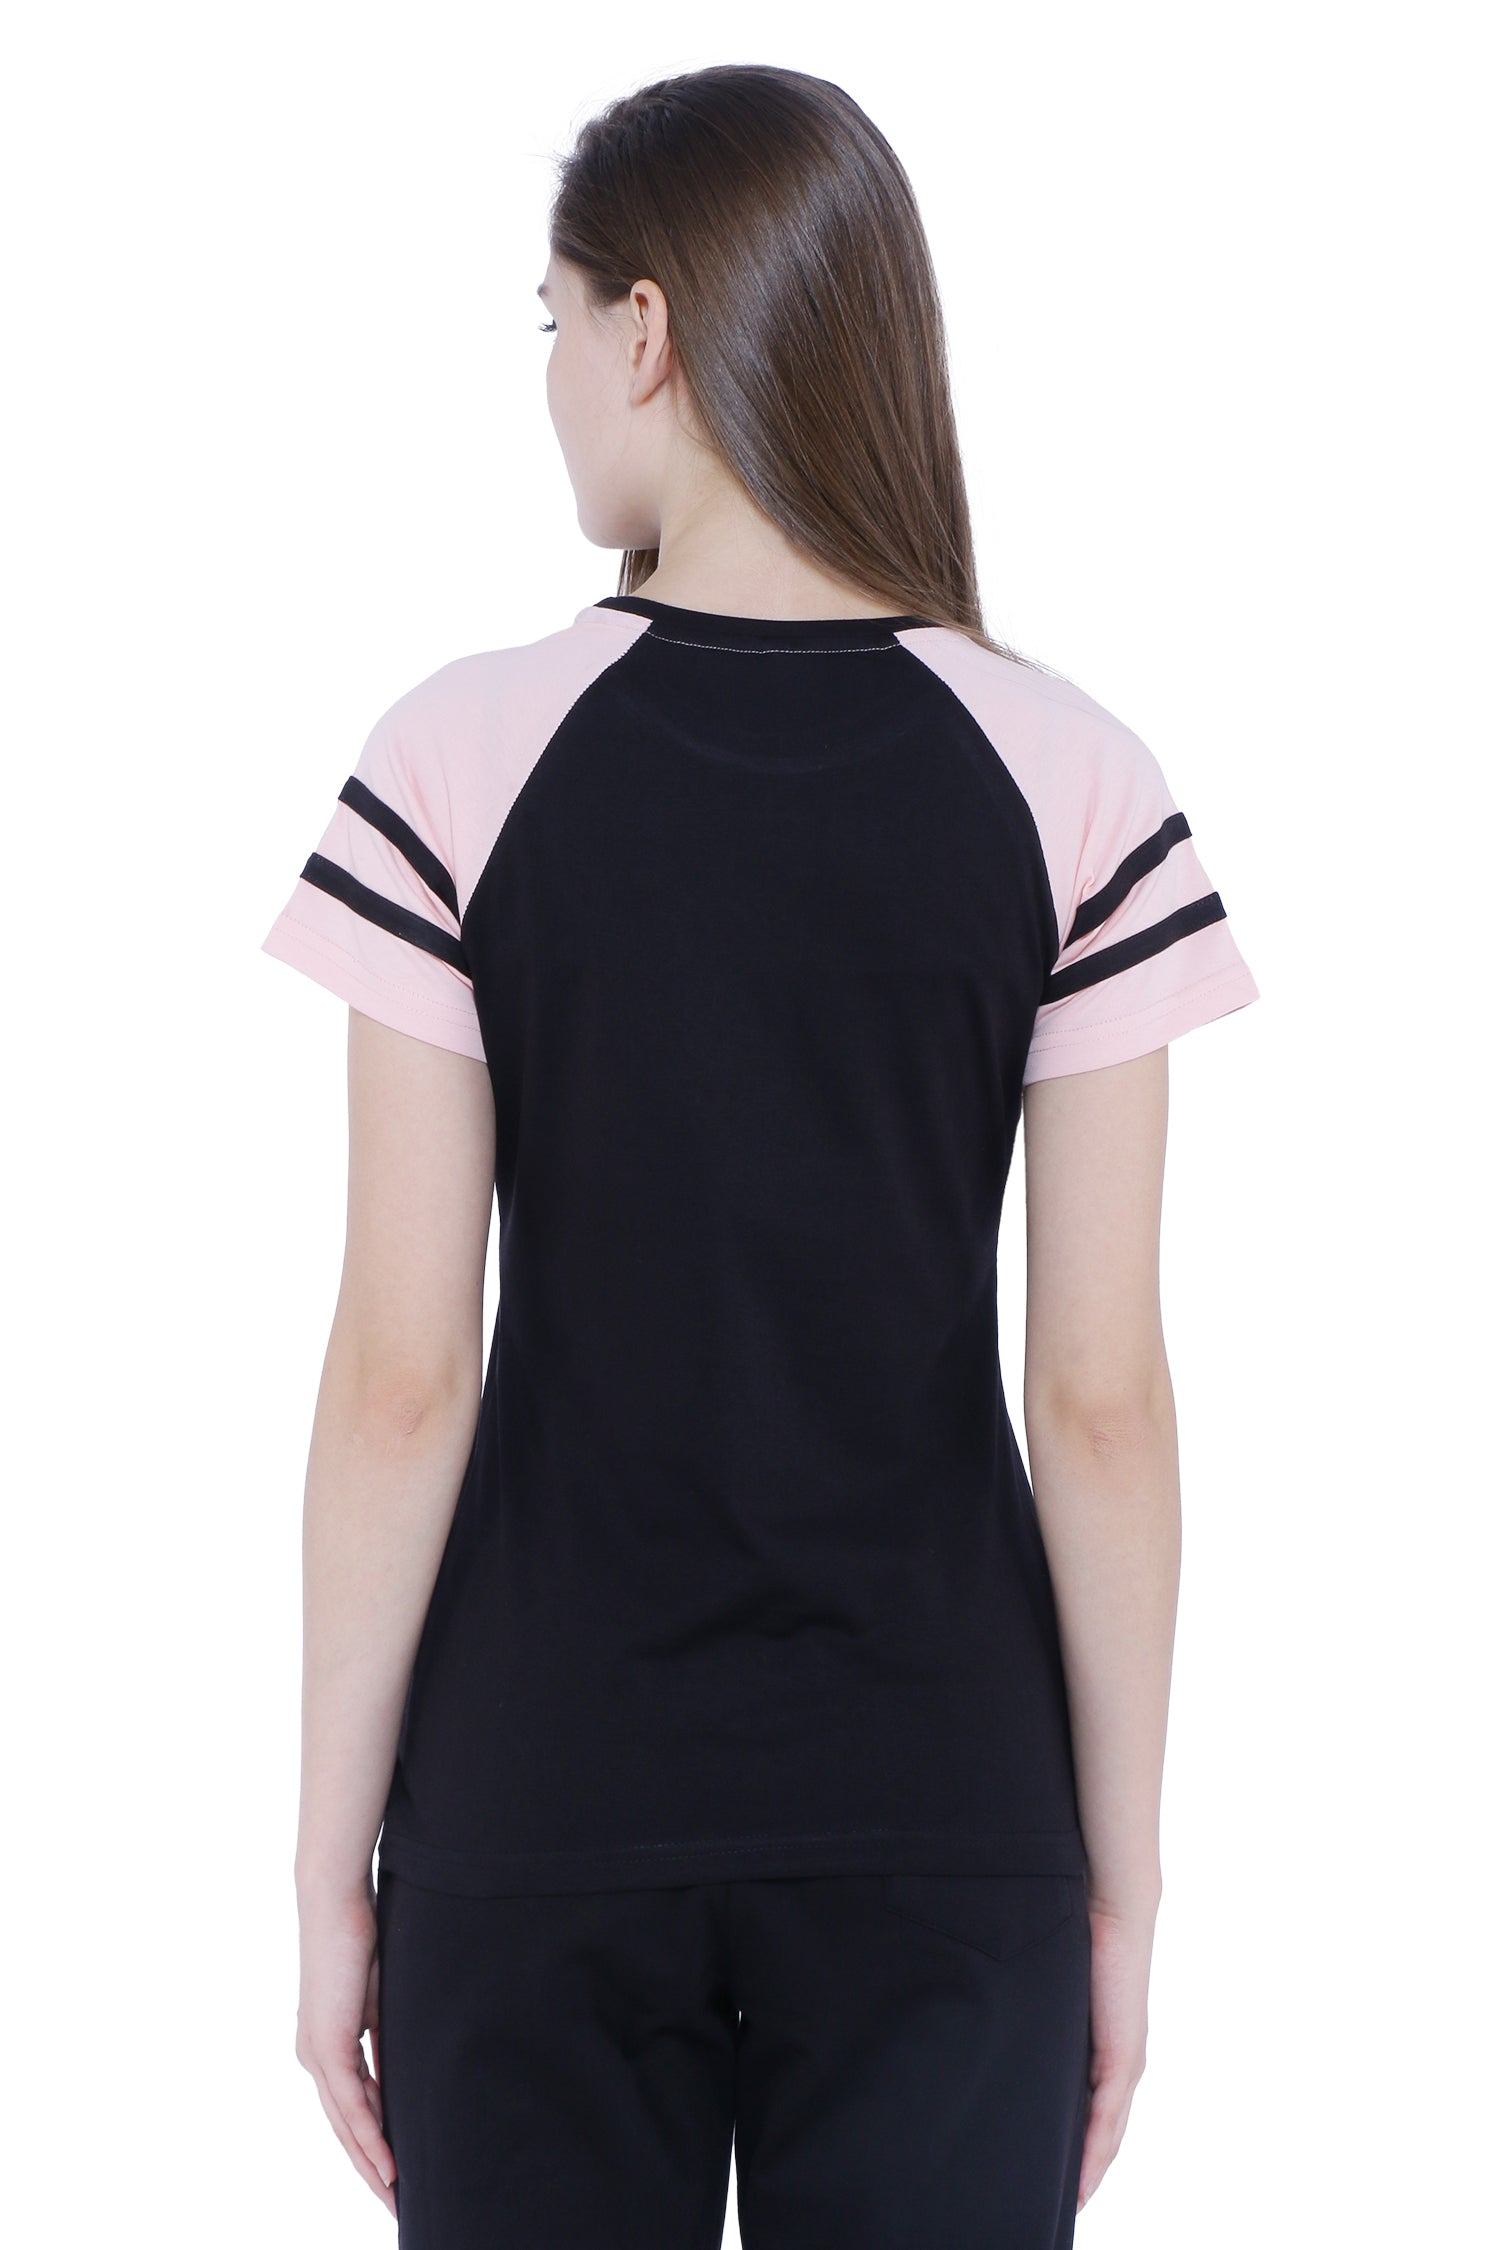 Raglan Half Sleeves with Stripes Women's  T-shirt (Black, Pink)